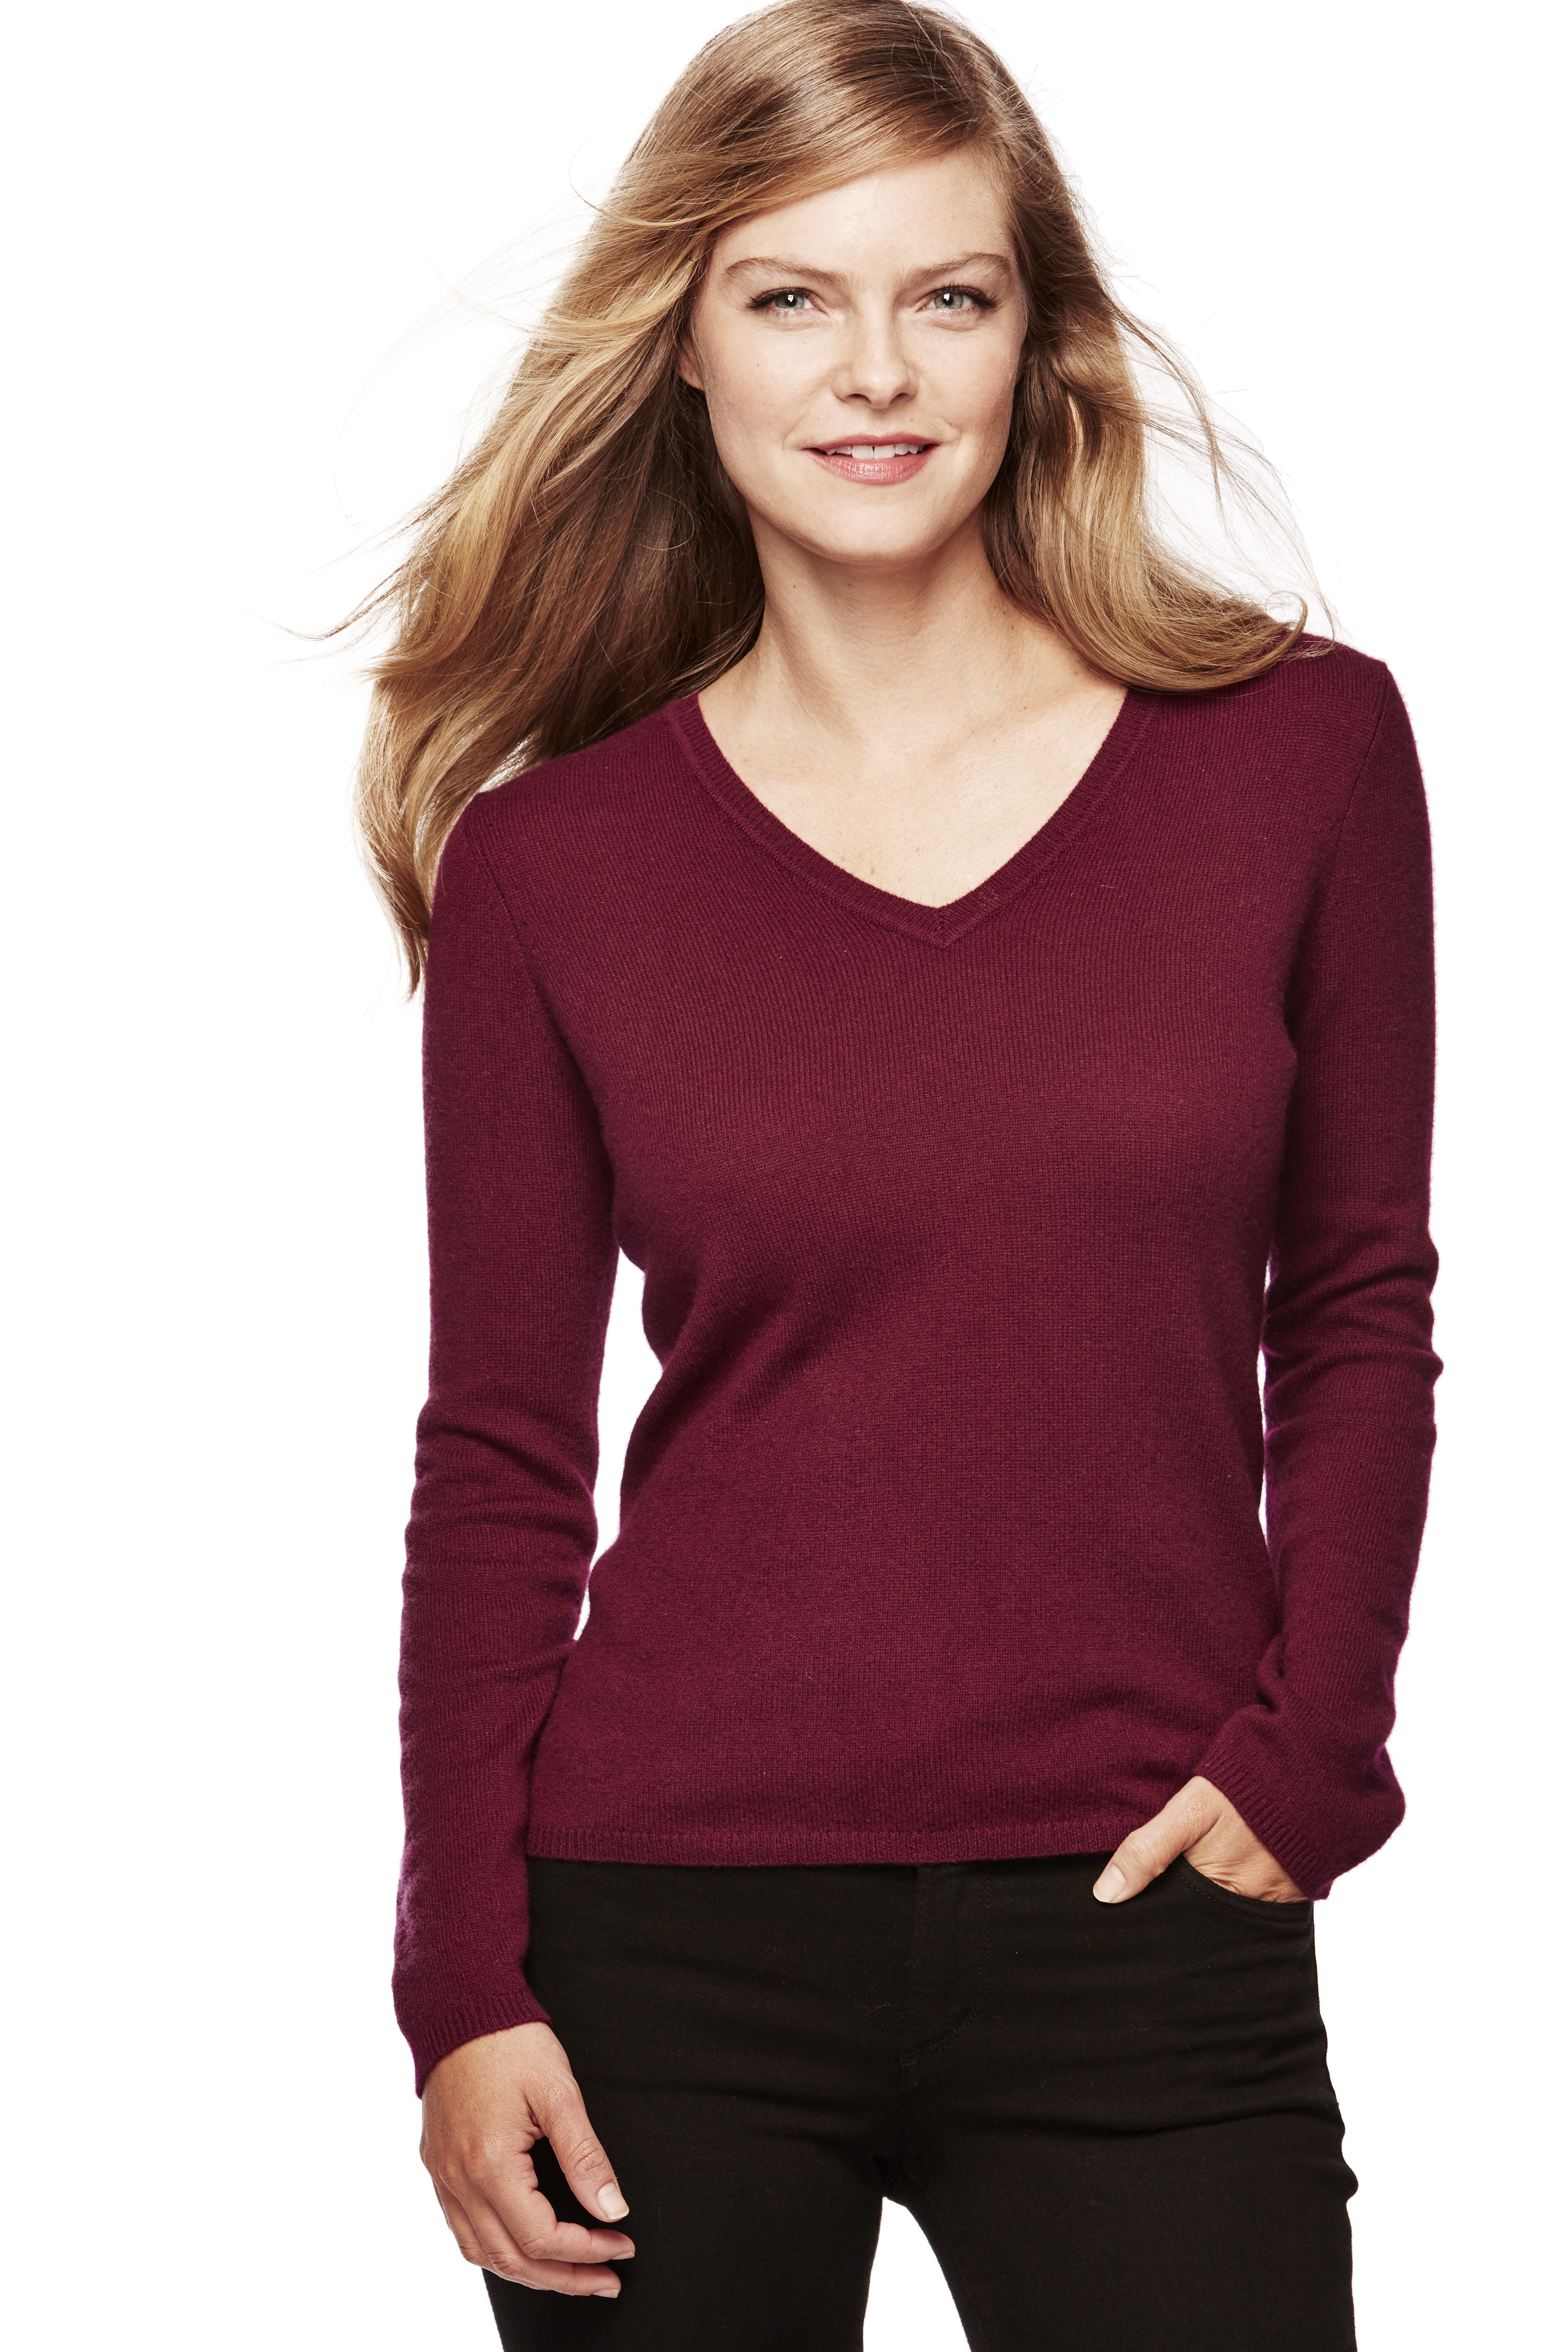 Shop Macy s for Big Discounts On Black Friday and Throughout Cyber ... 5ff6bd163